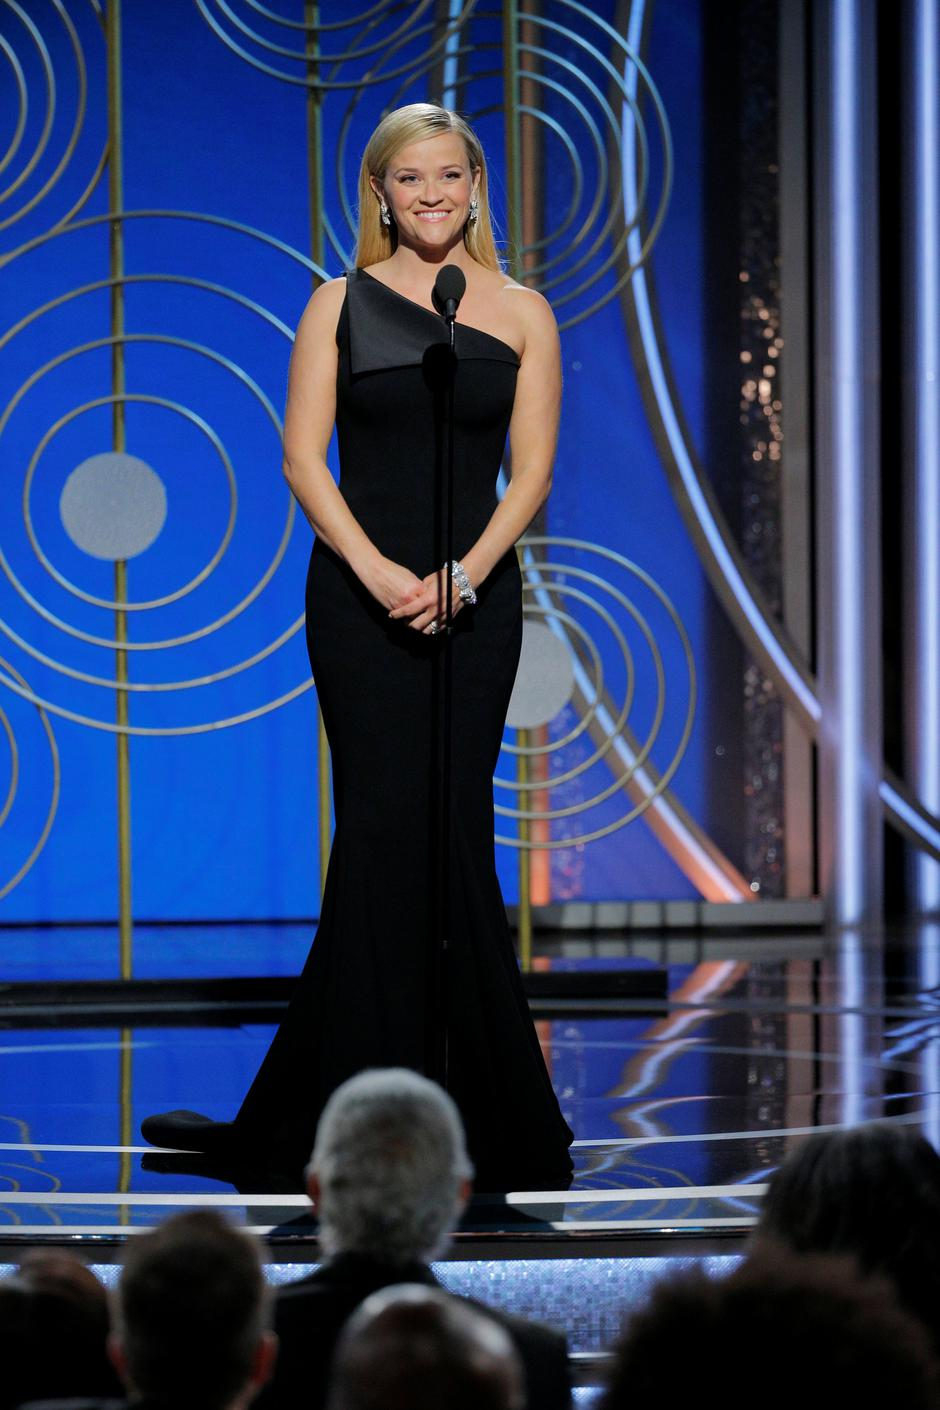 Presenter Reese Witherspoon at the 75th Golden Globe Awards in Beverly Hills, California | Autor: HANDOUT